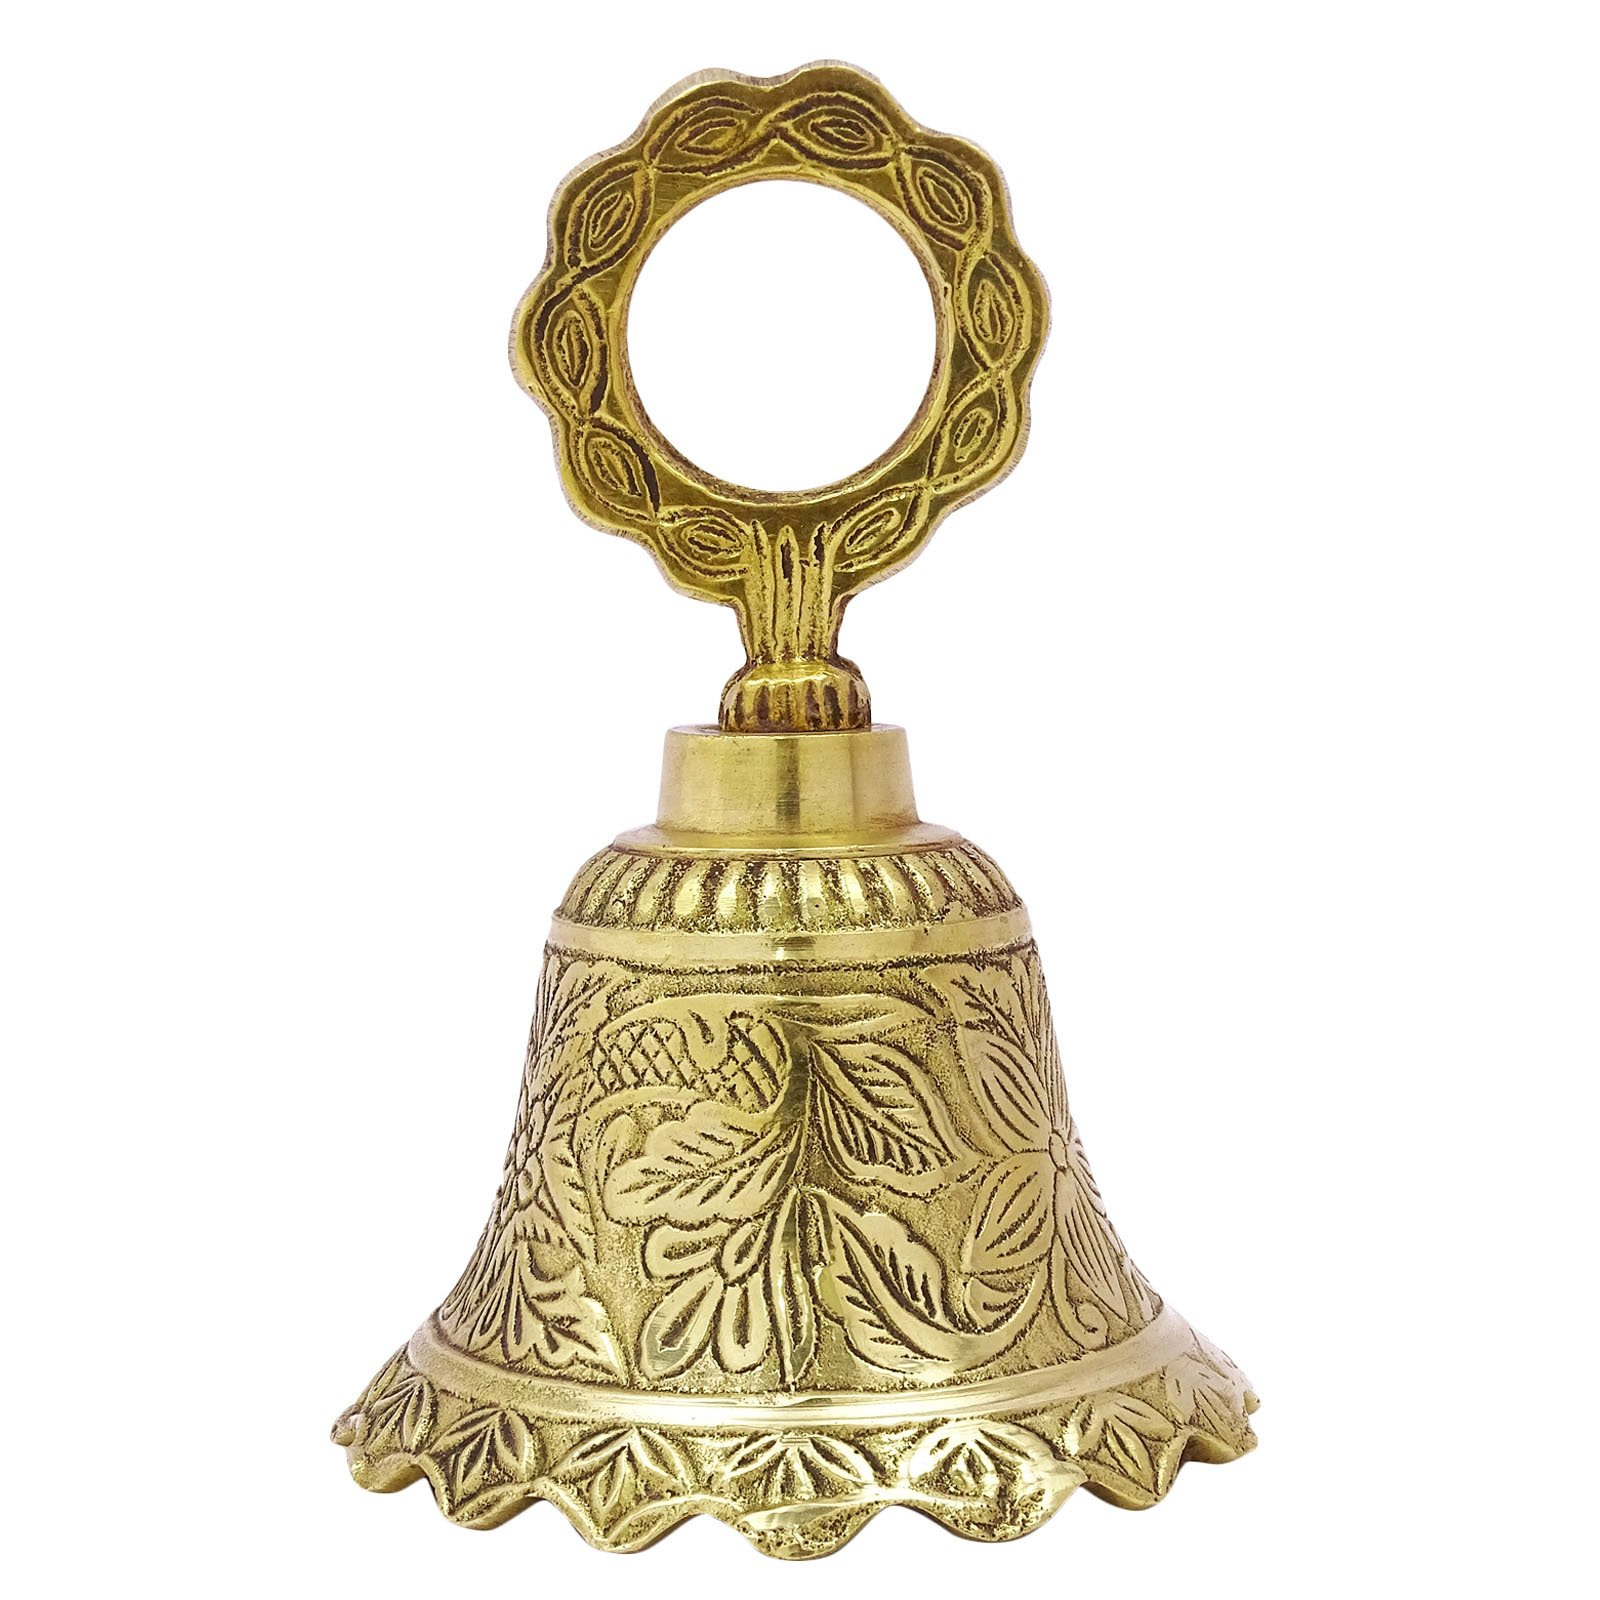 Engraved Brass Hand Bell Metal Art Hanging Religious Prayer Traditional Bells